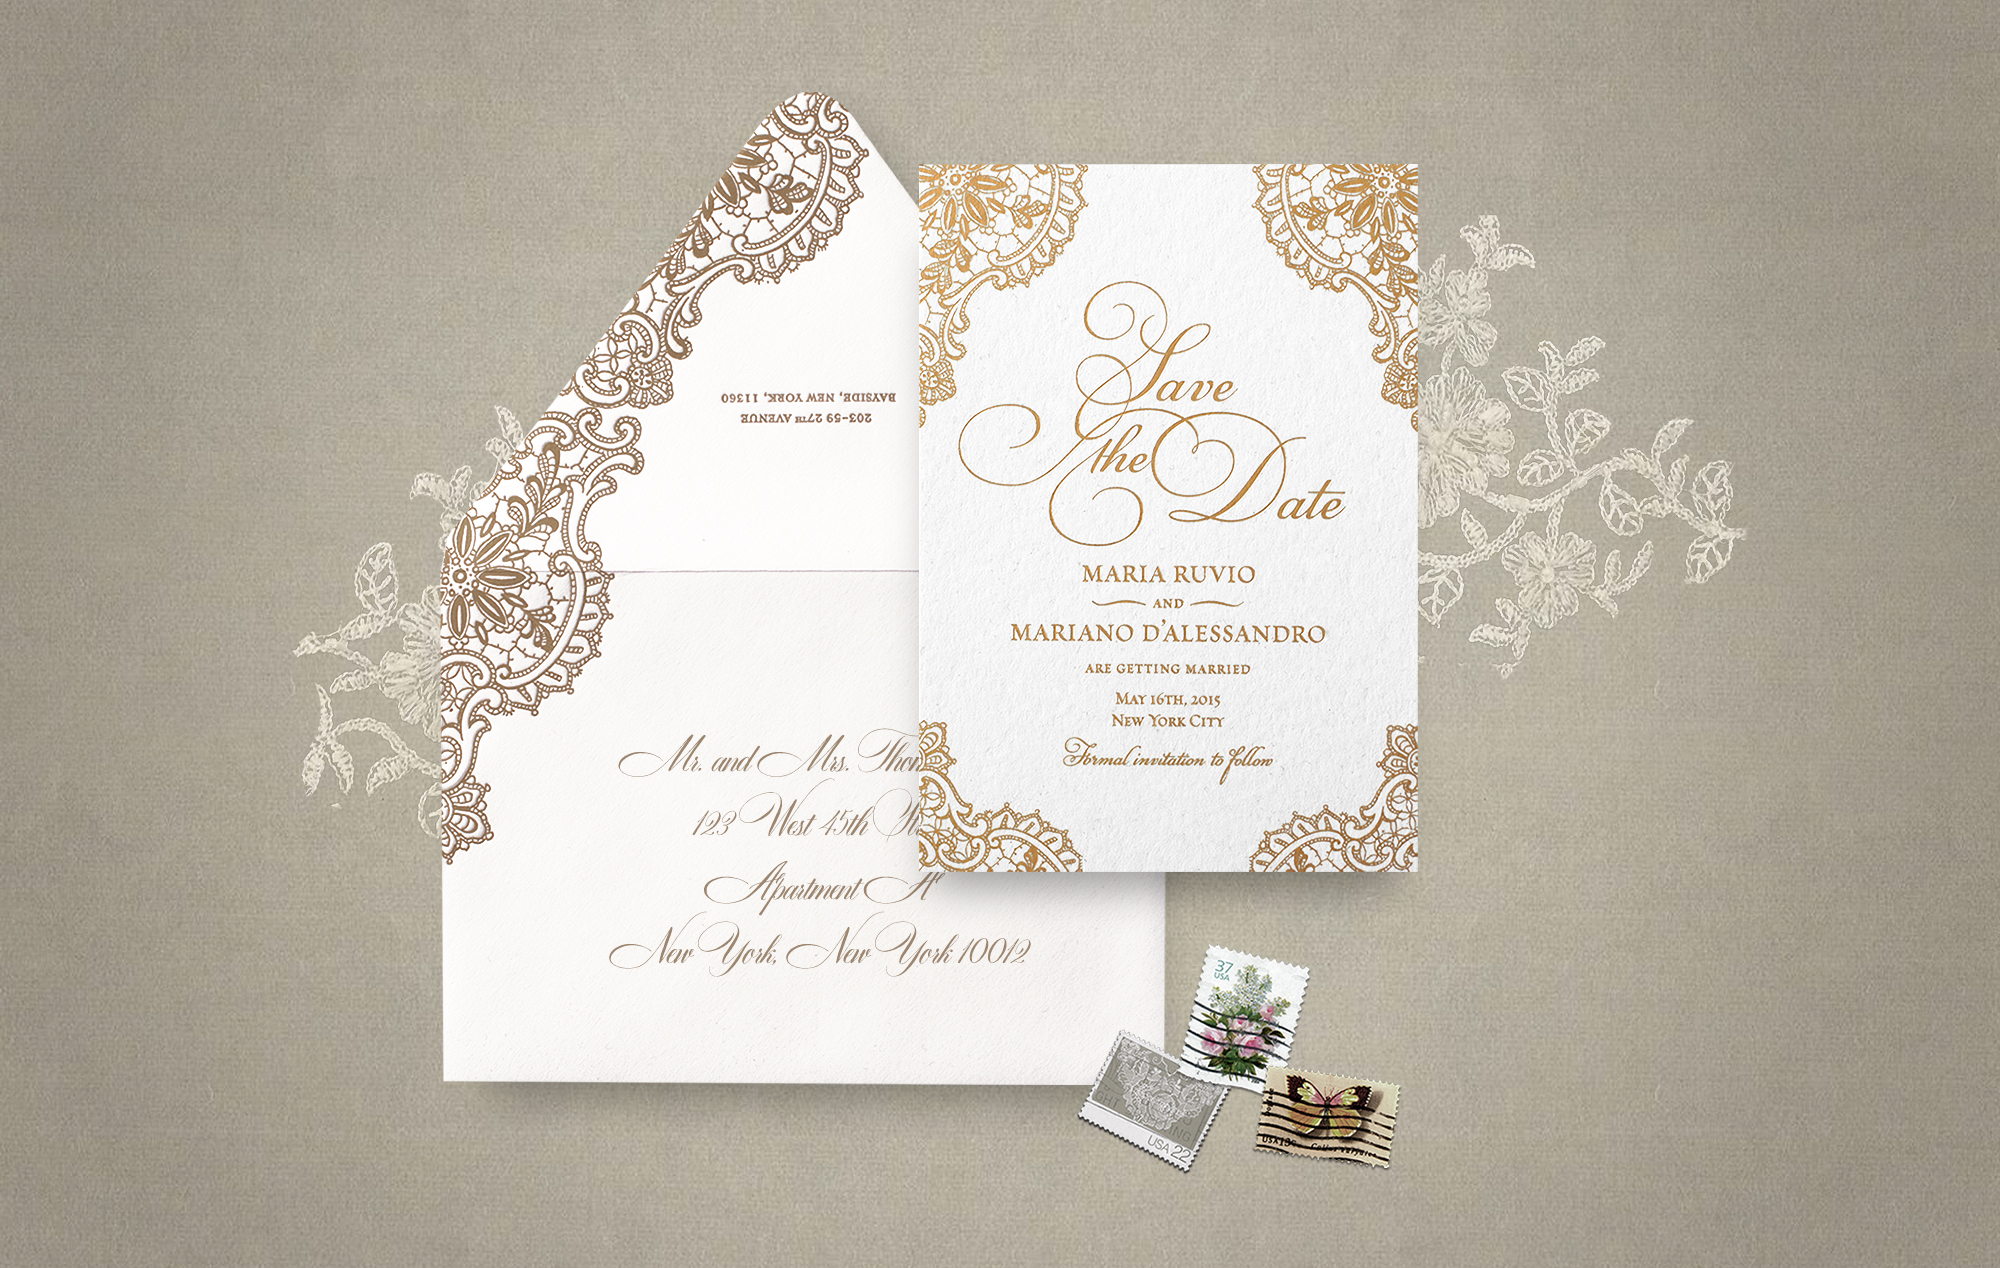 Ornate gold lace save the date and envelope